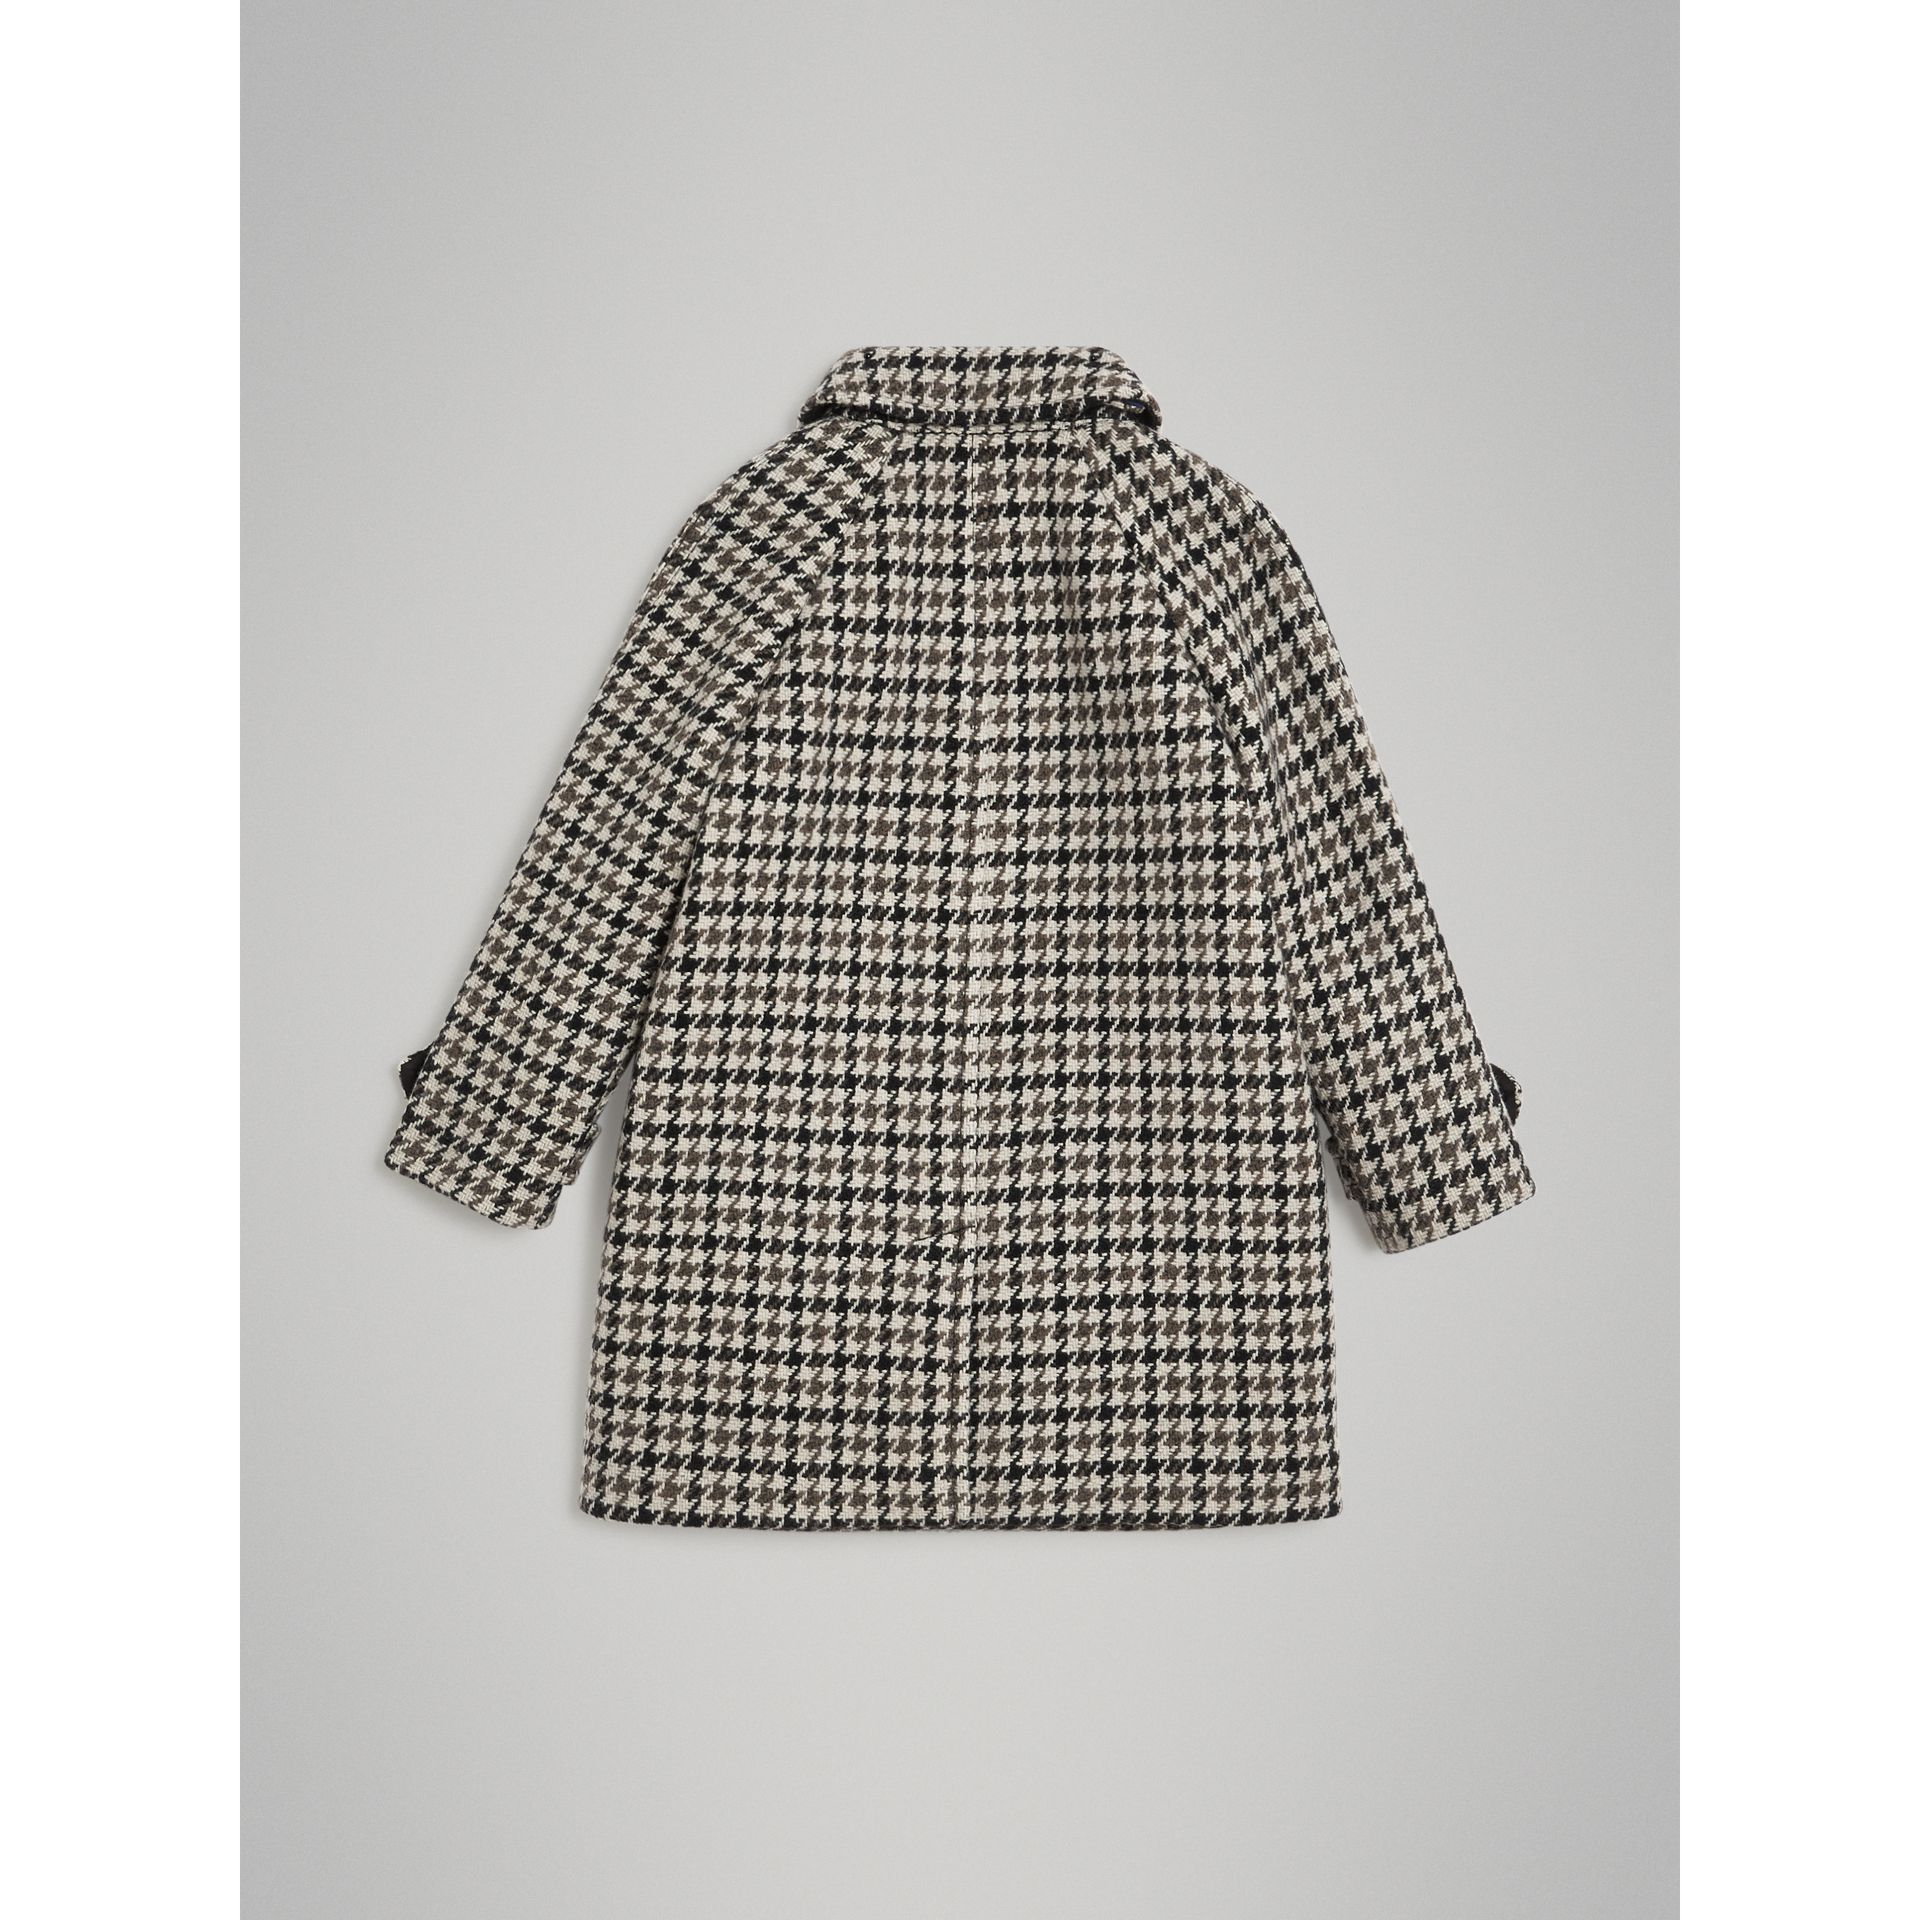 Houndstooth Check Wool Cashmere Blend Coat in Mid Grey | Burberry United States - gallery image 3